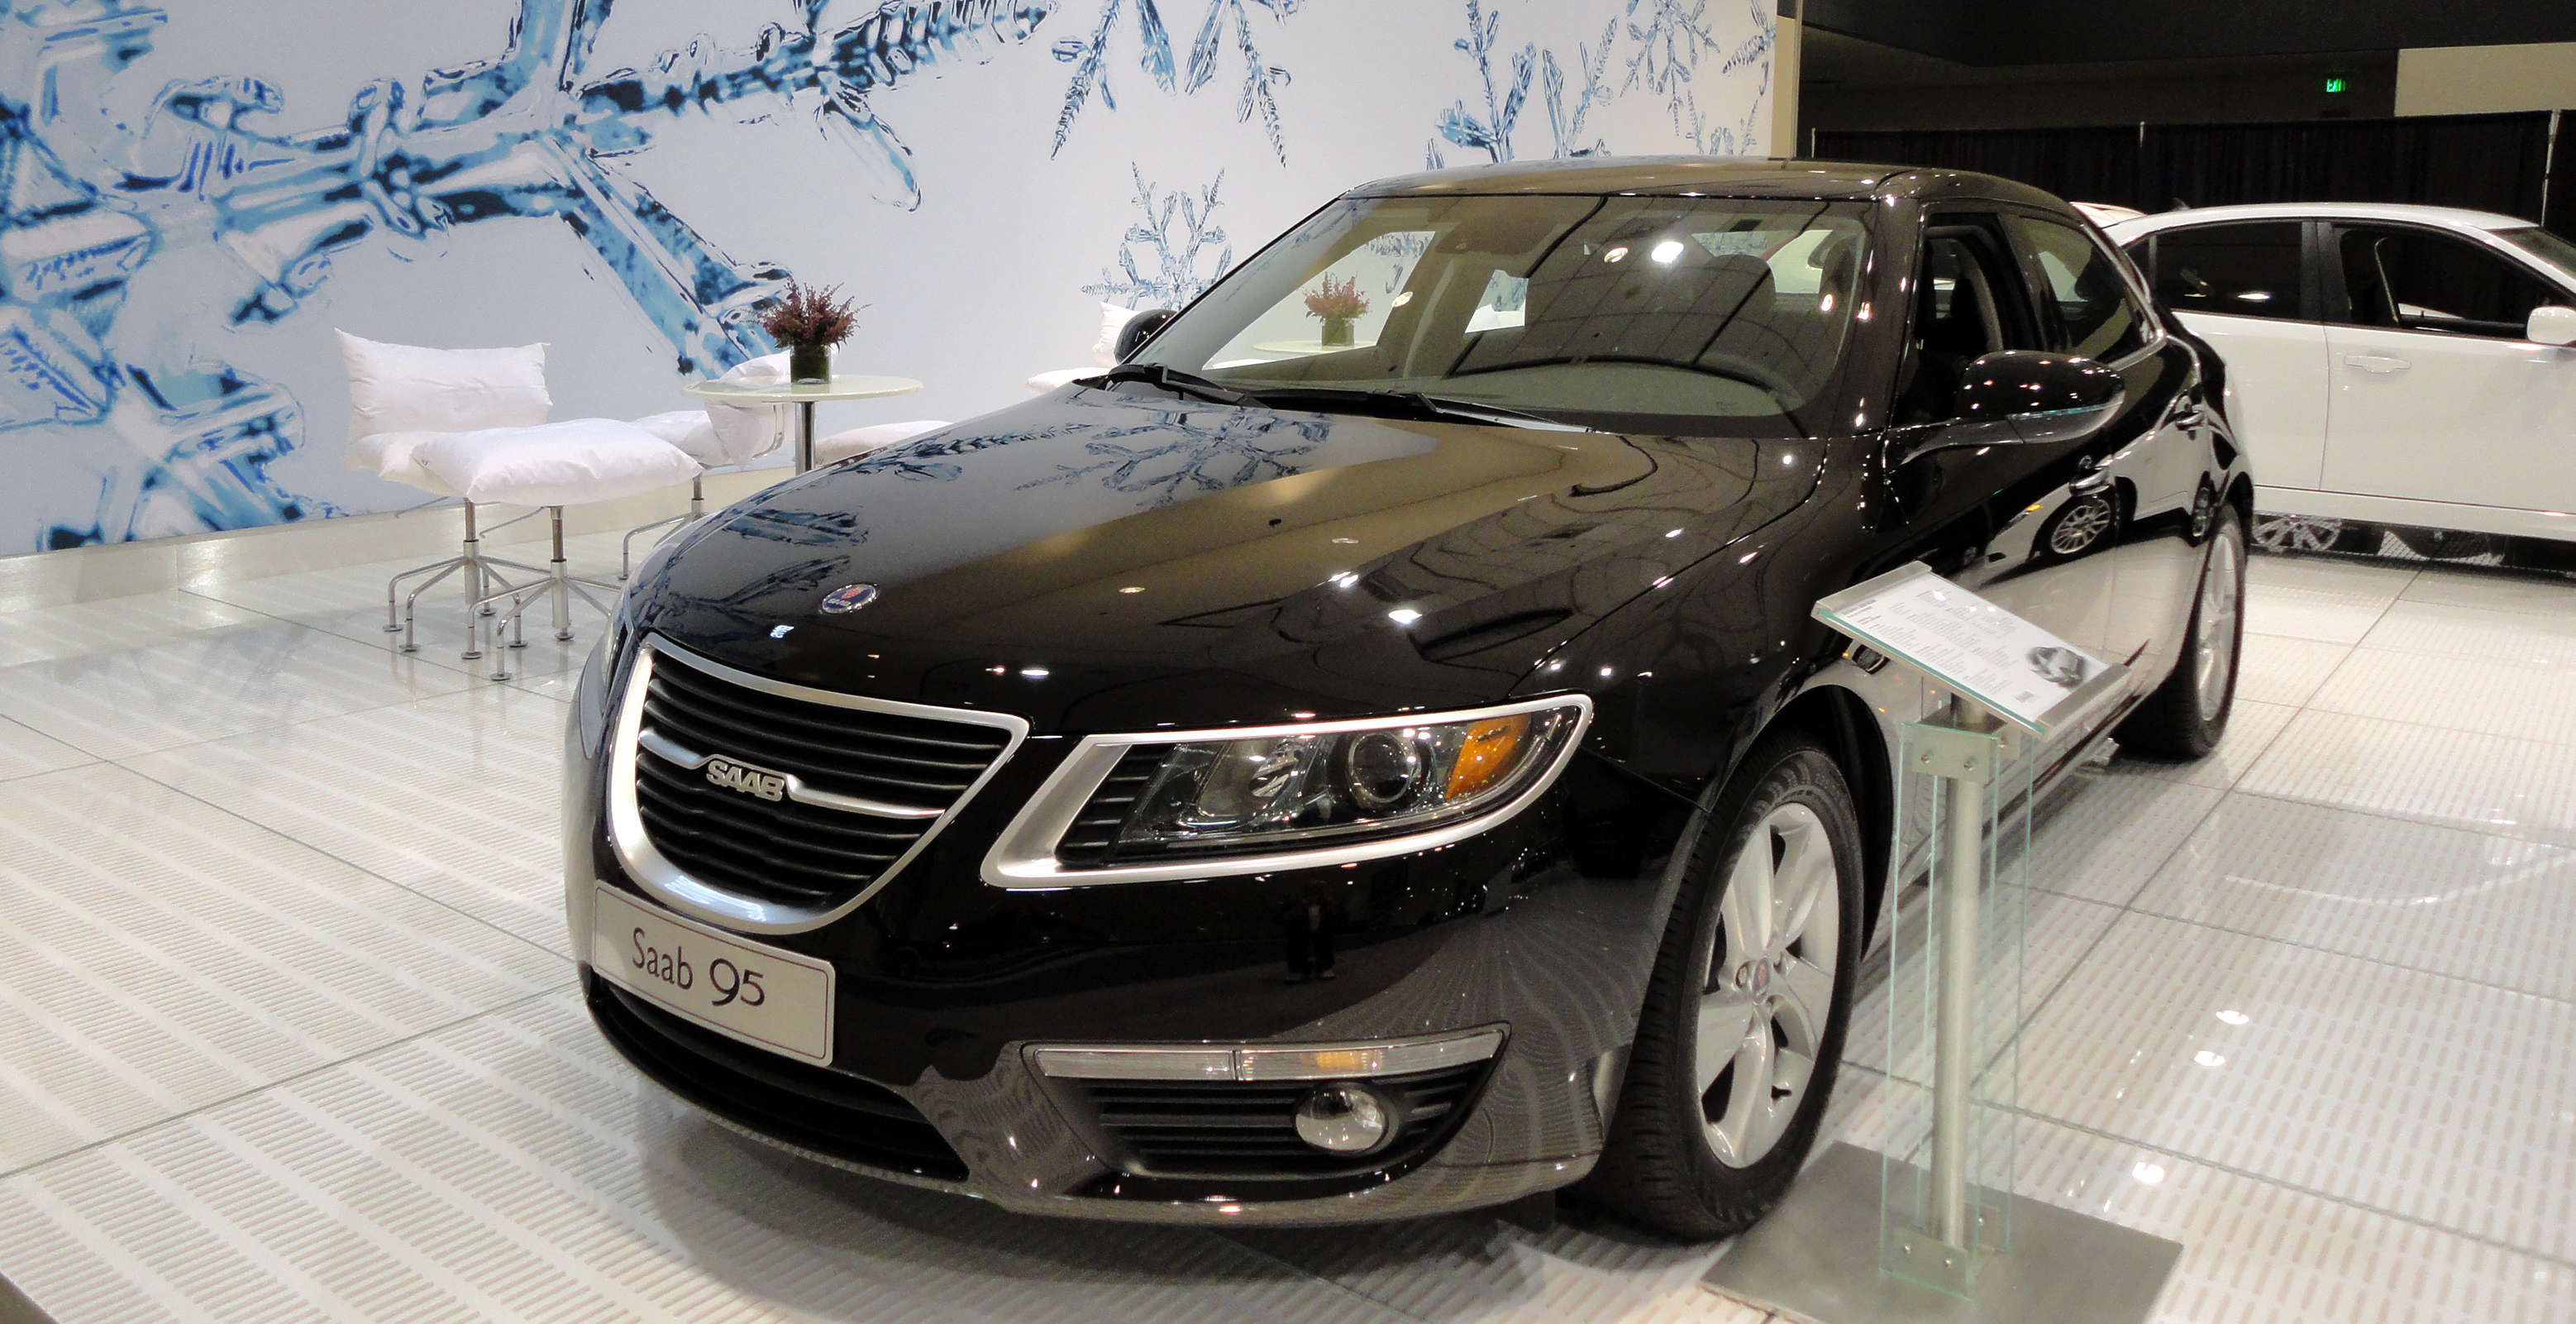 Saab Repair Longmont, CO